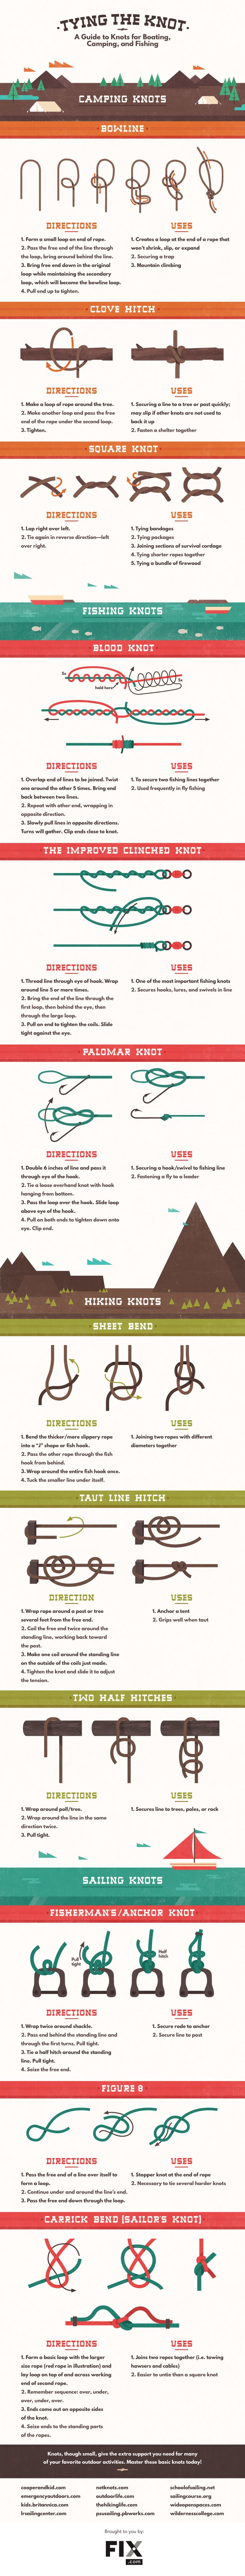 Spend an afternoon learning to tie different knots with Dad this Father's Day. Perfect for camping, climbing and so many more activities.